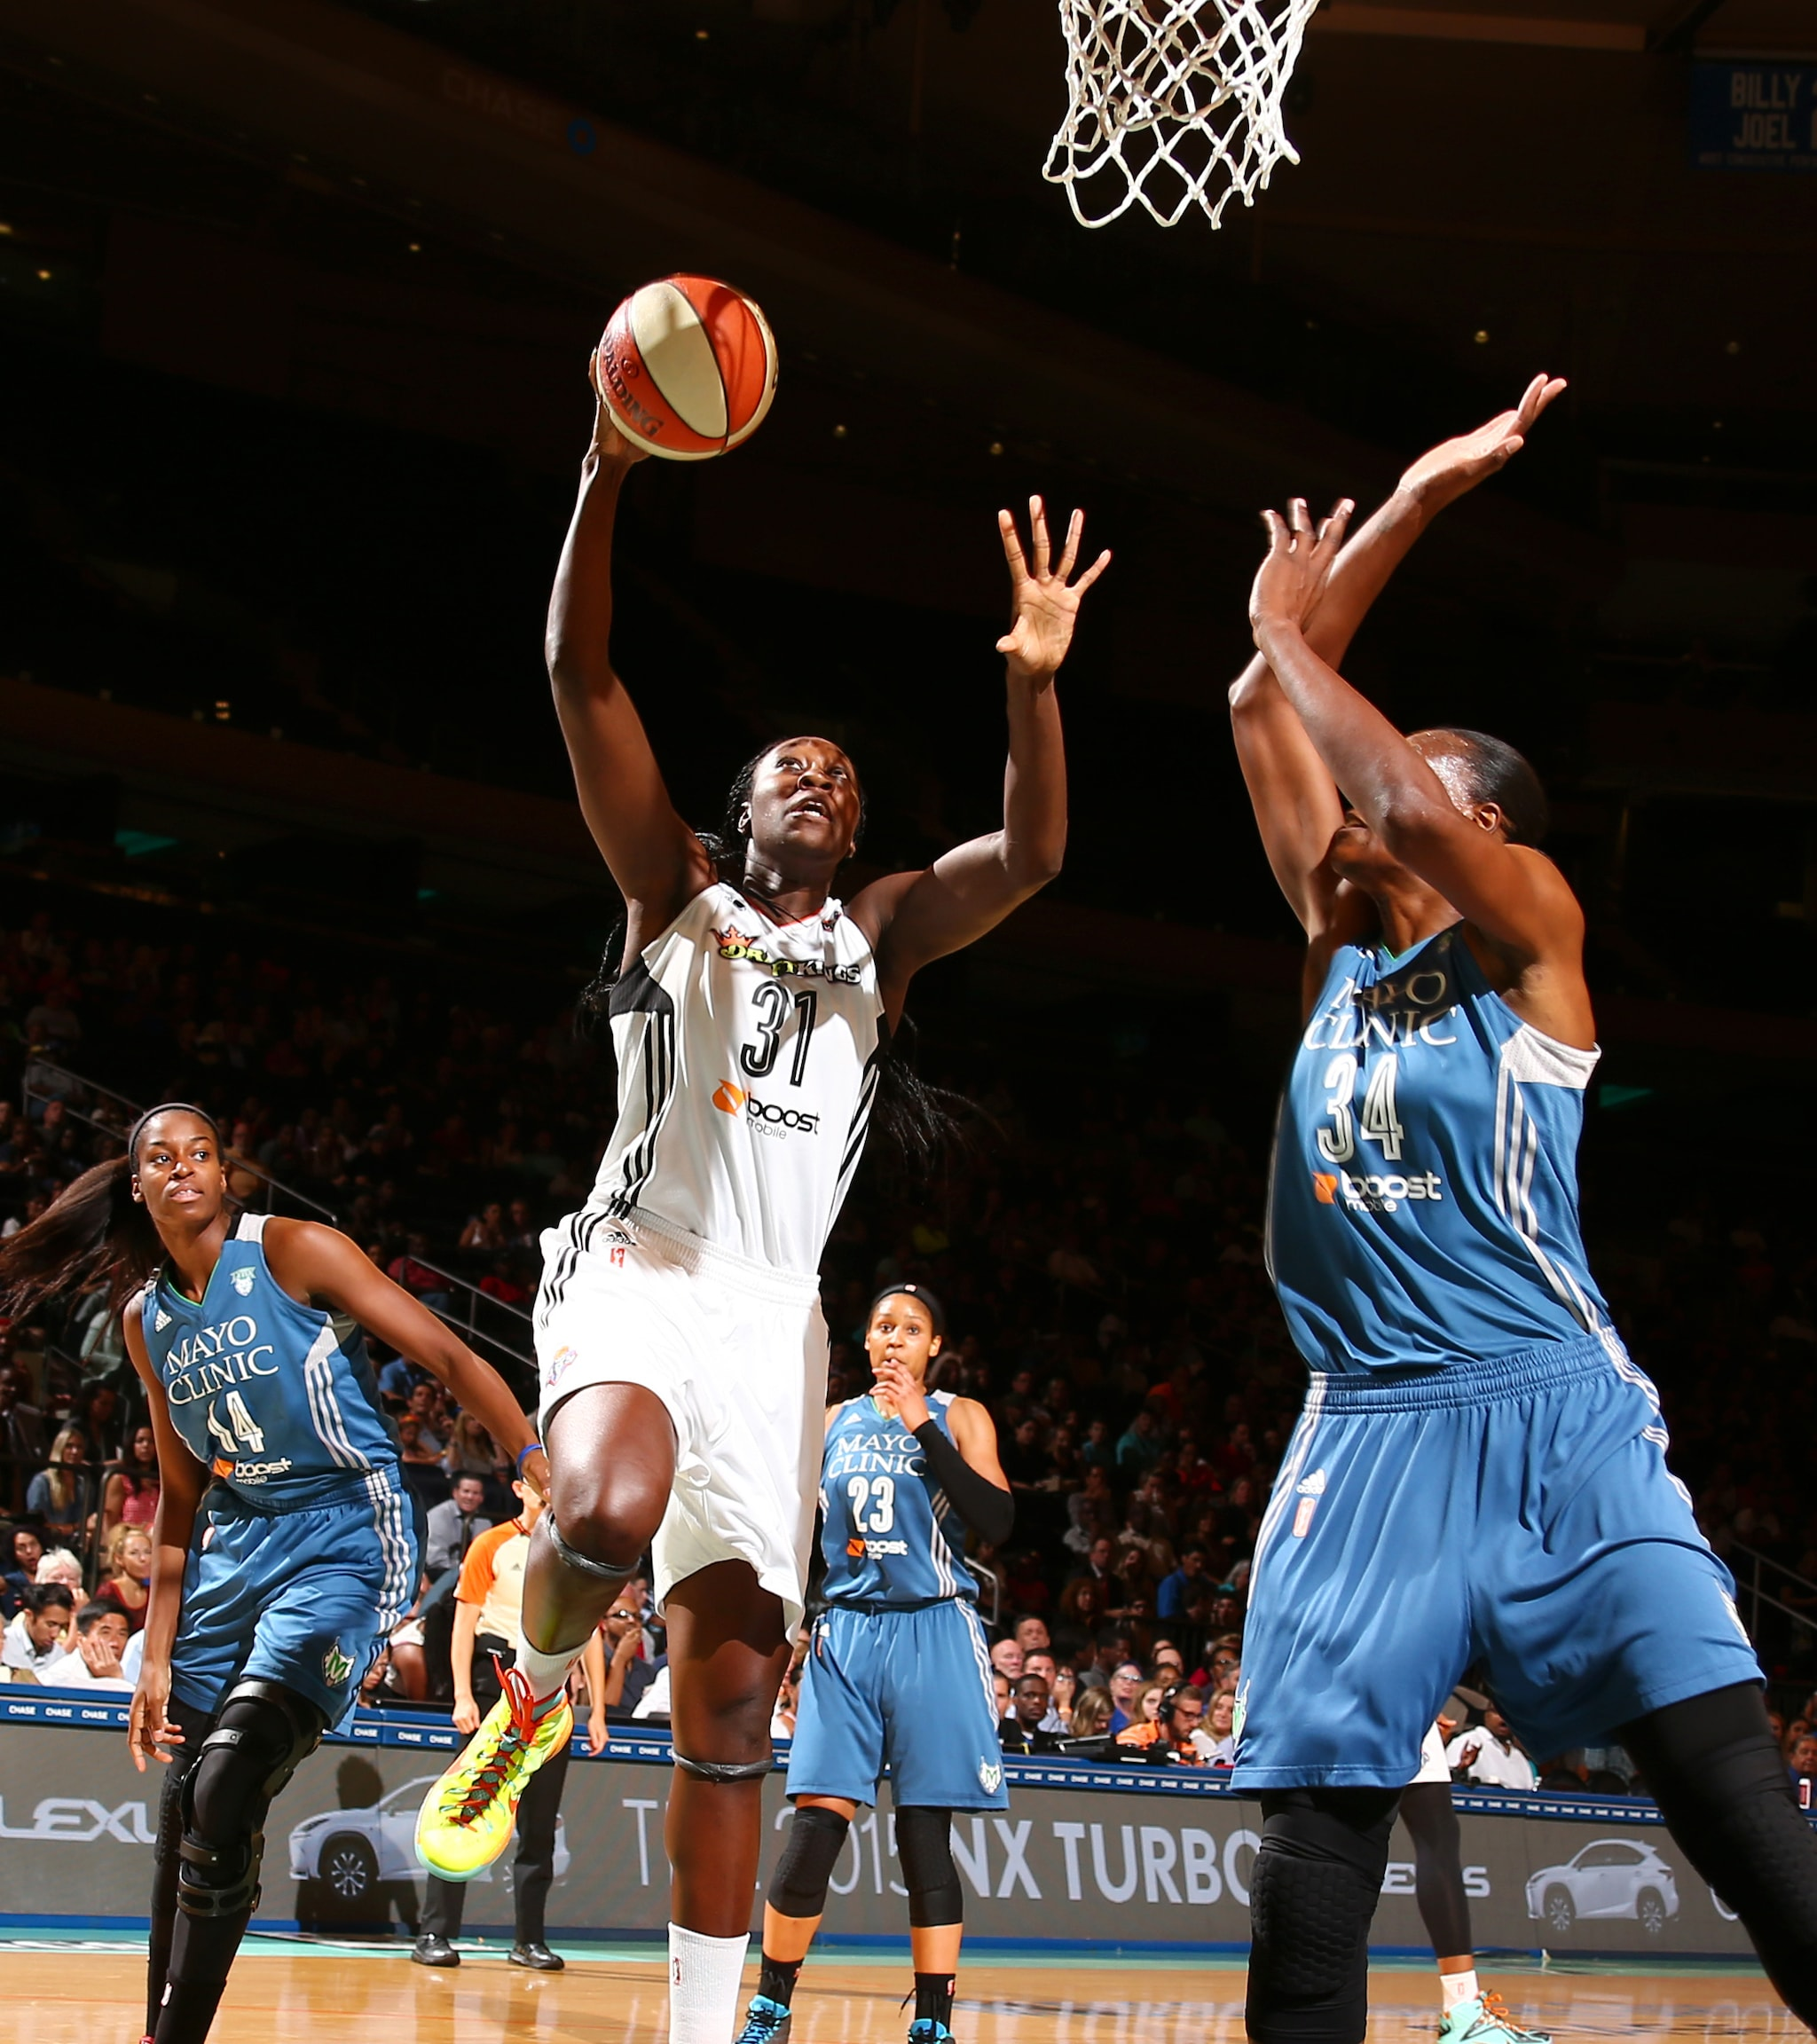 Two of the best centers in the game faced off in a huge playoff-esque game Friday night in New York. Liberty center Tina Charles got her team the win, finishing with 18 points, 11 rebounds and two steals. Lynx center Sylvia Fowles had a great game for her team as well though, finishing with 18 points, 10 rebounds and two blocked shots.